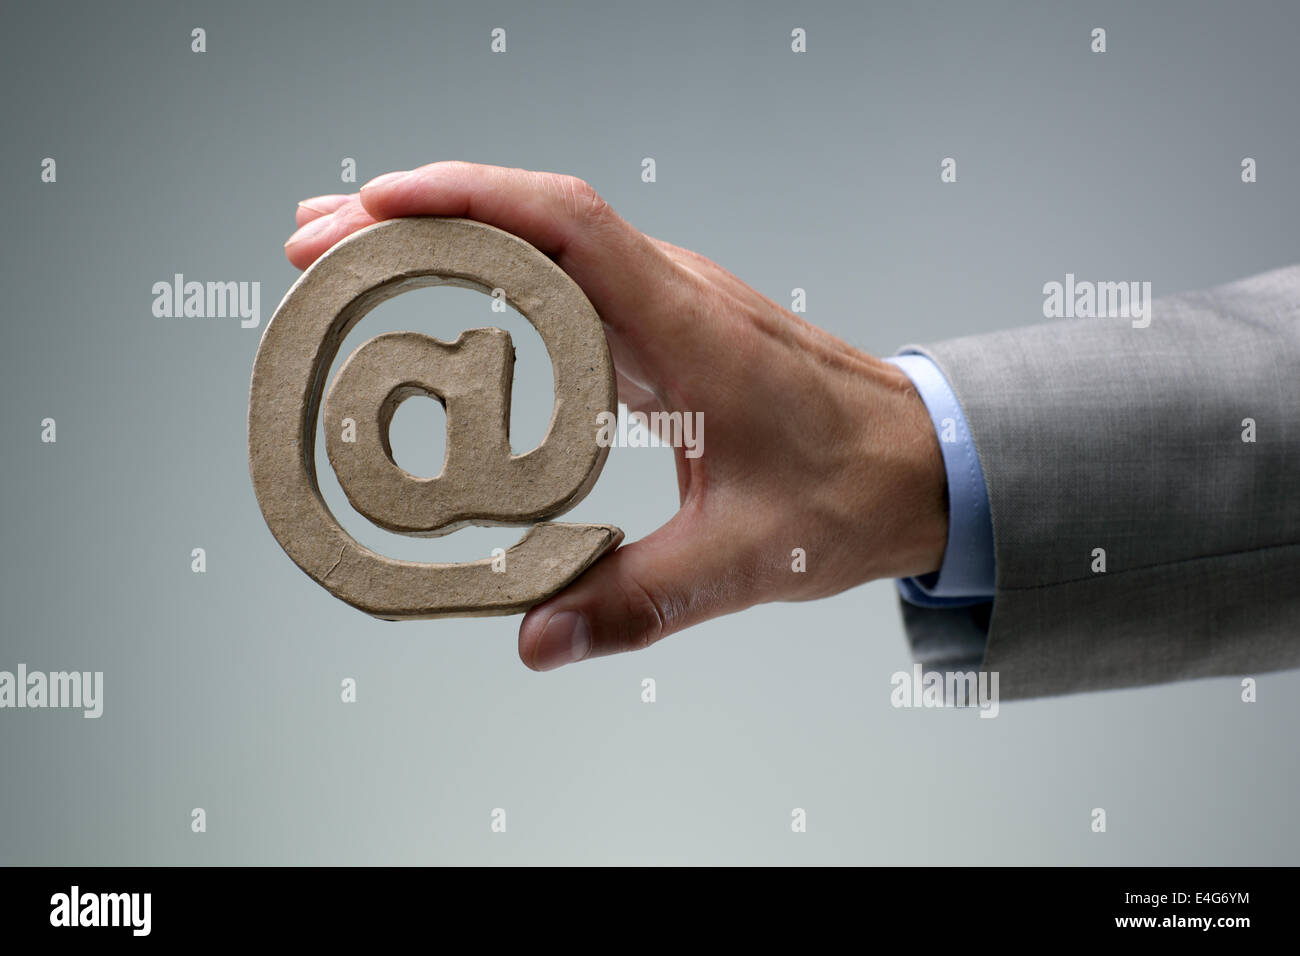 E-mail @ symbol - Stock Image